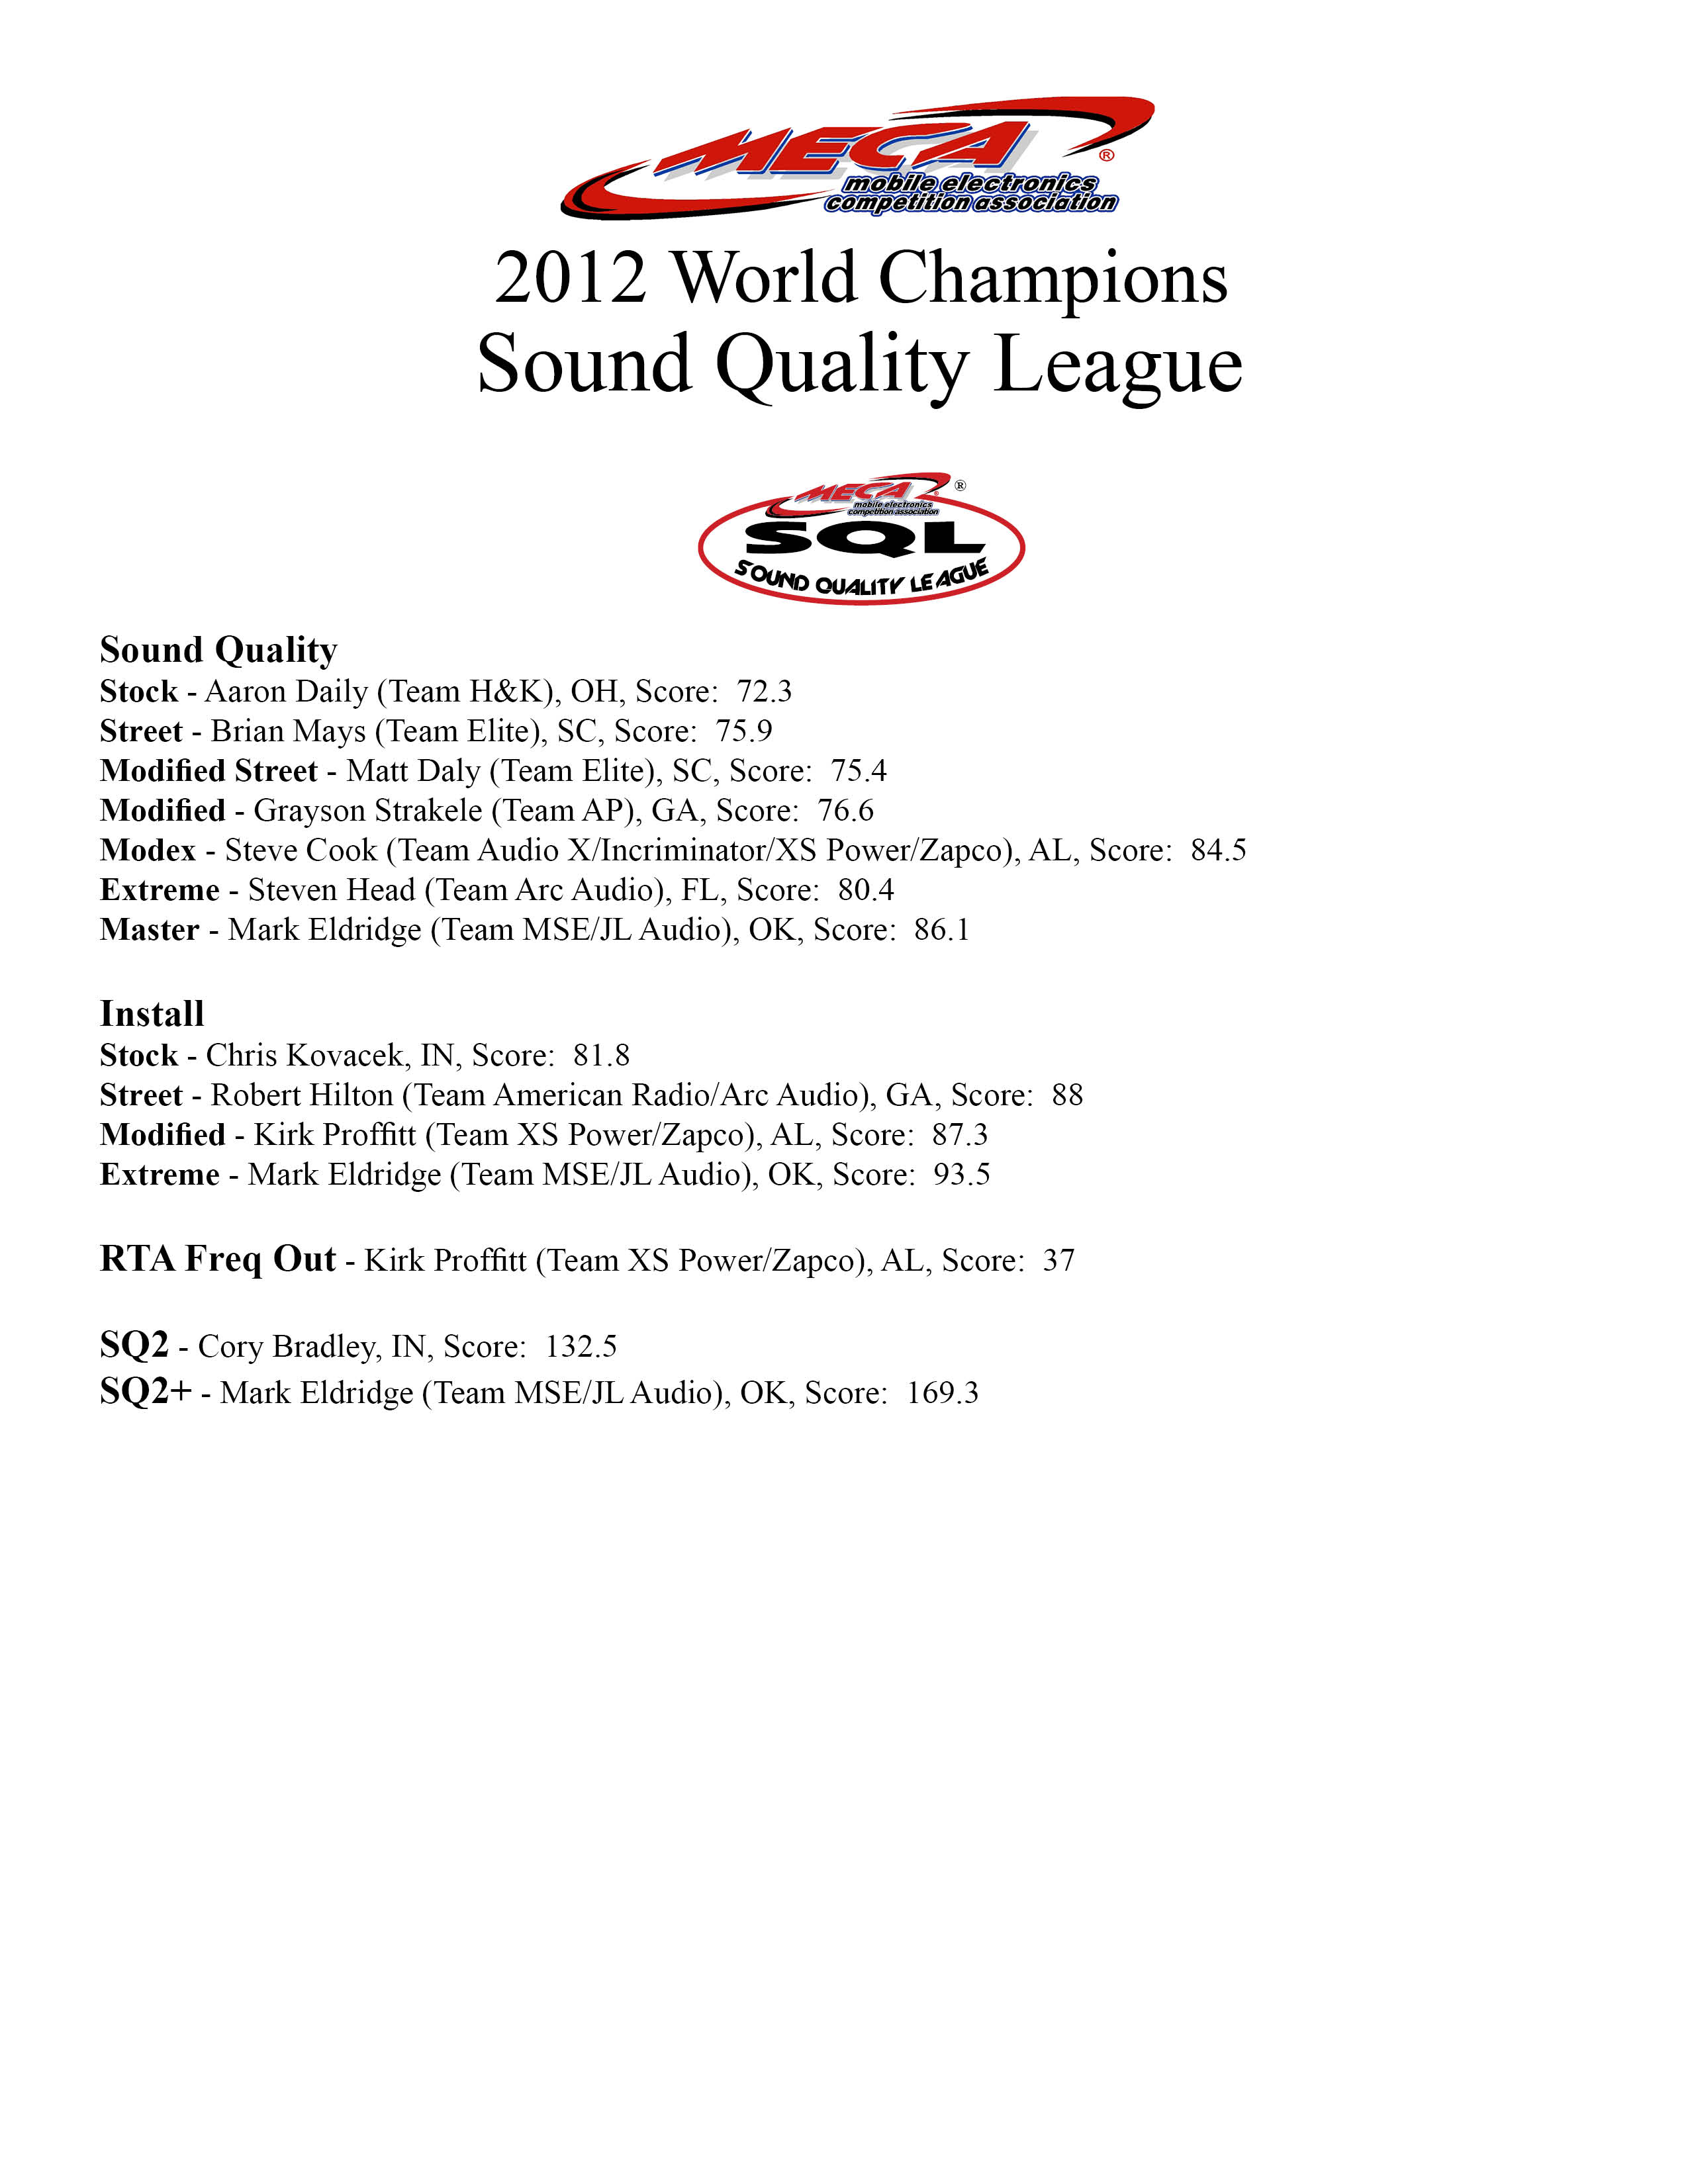 2012 Sound Quality League Champions